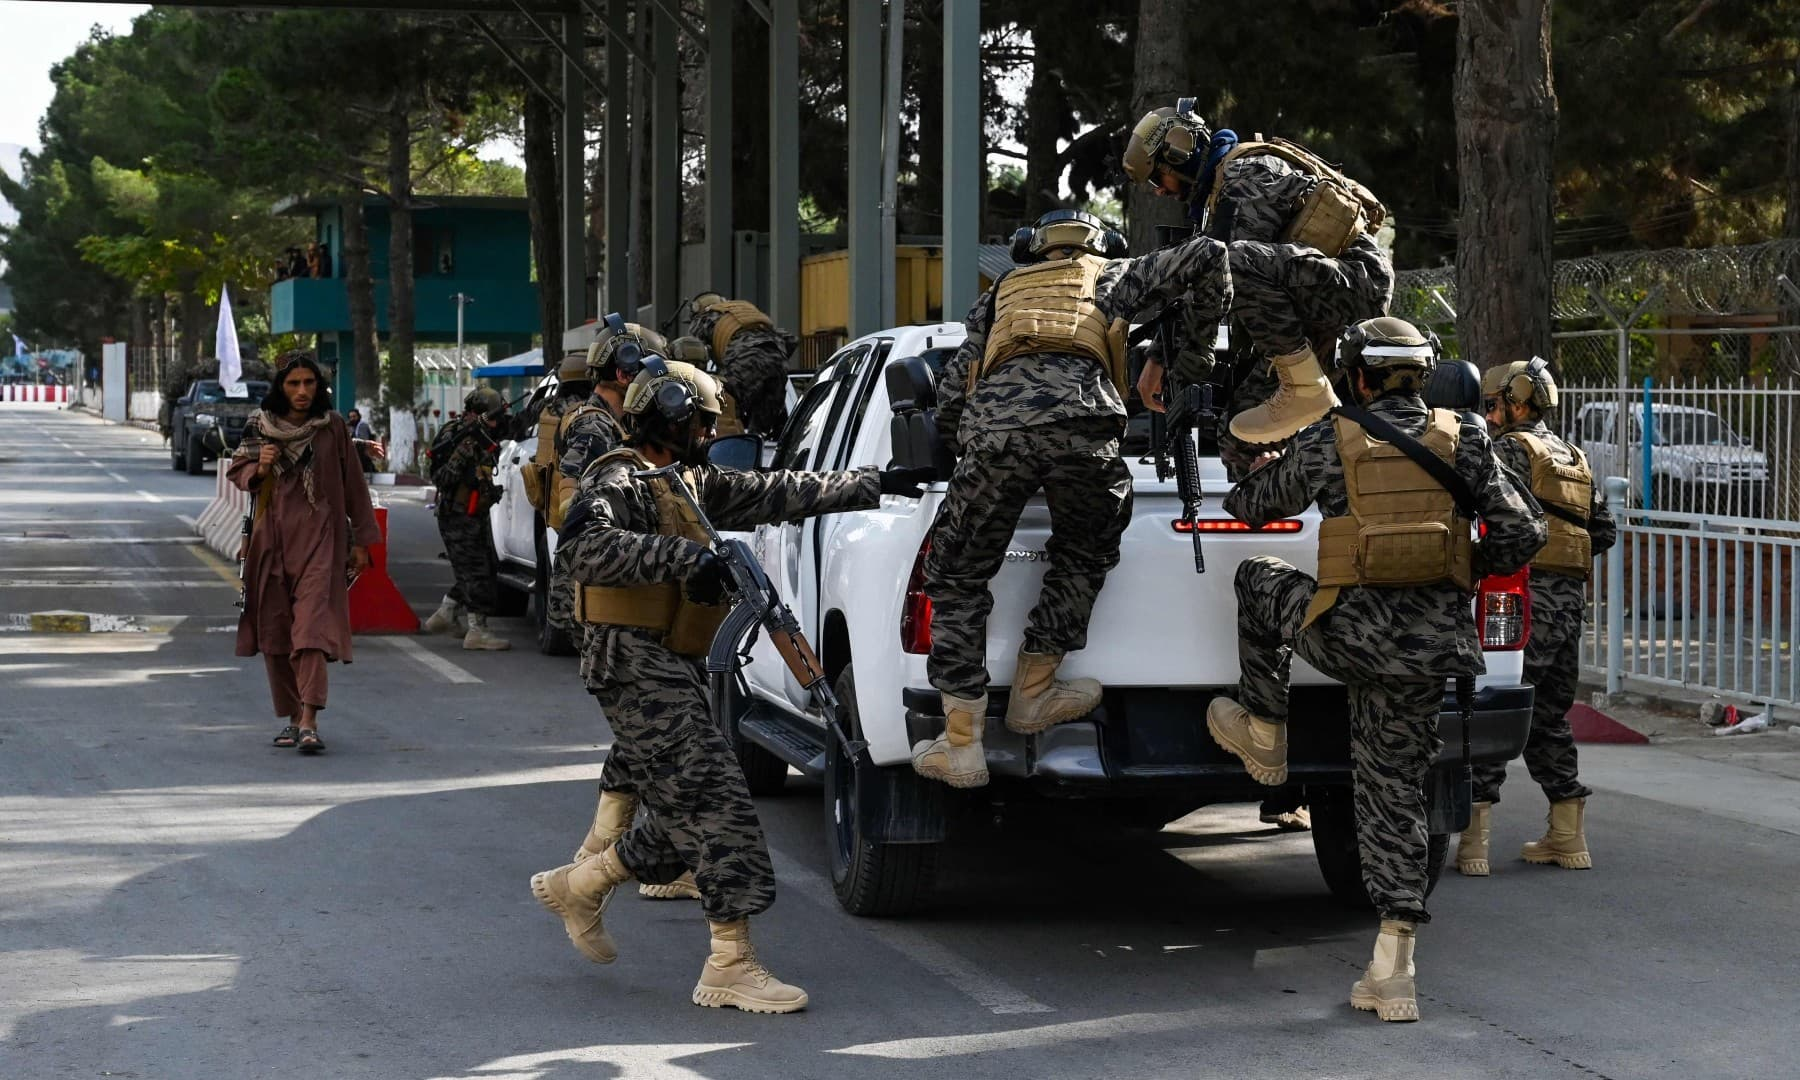 Taliban Badri special force fighters arrive at the main entrance gate of the airport in Kabul on August 31. — AFP